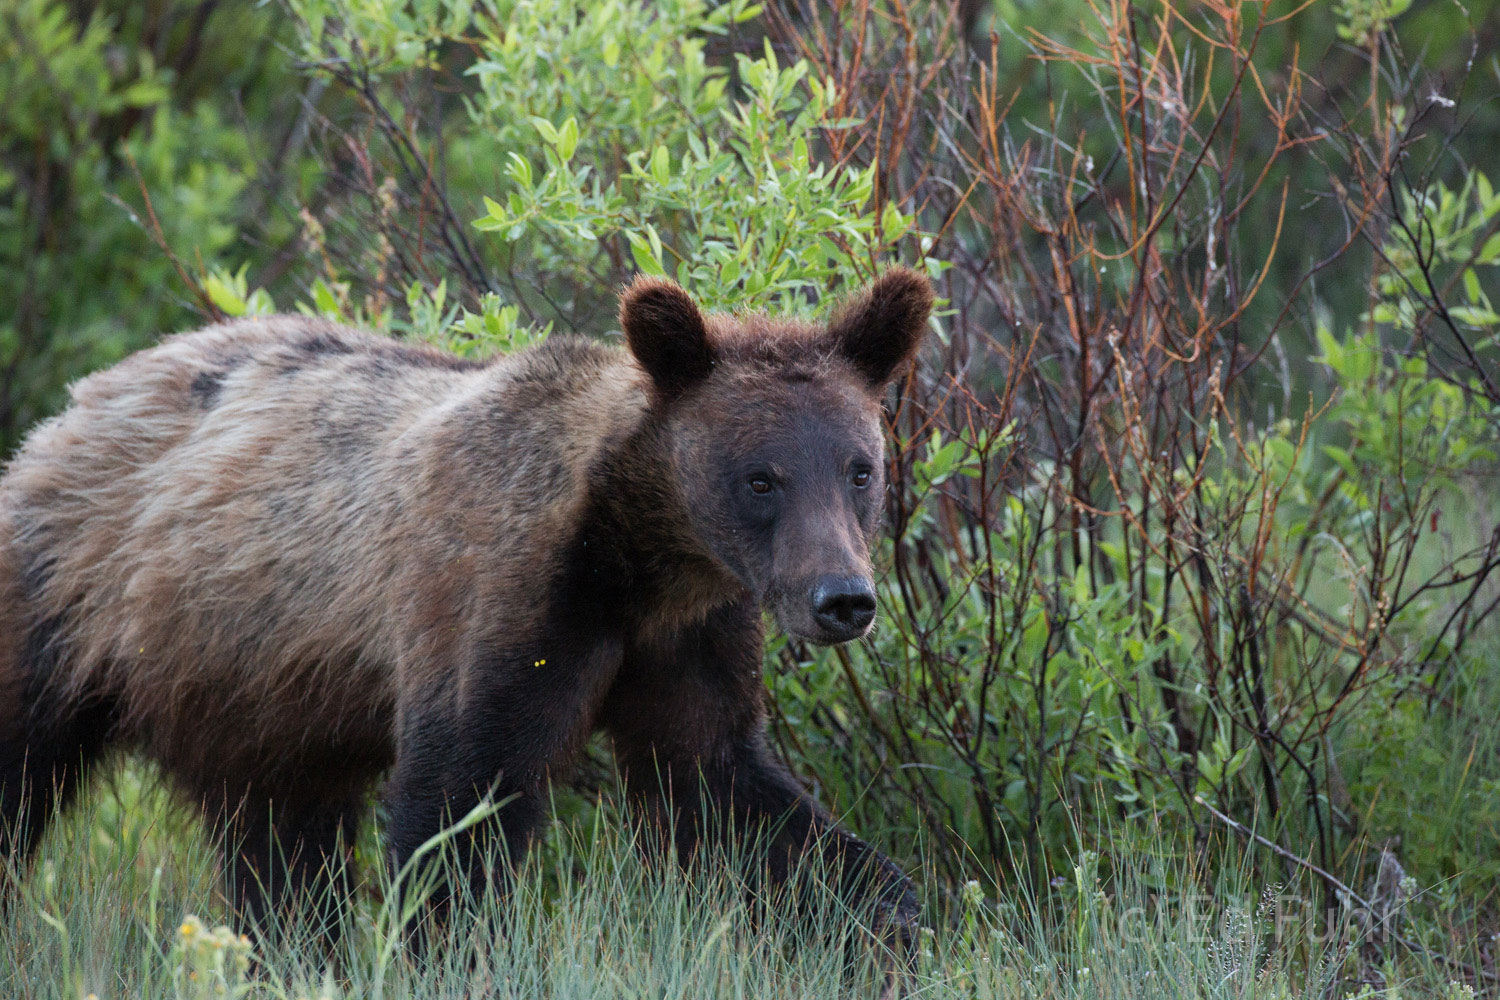 grand teton national park, grizzly bear, 610, cub, photograph, image, 2013, photo